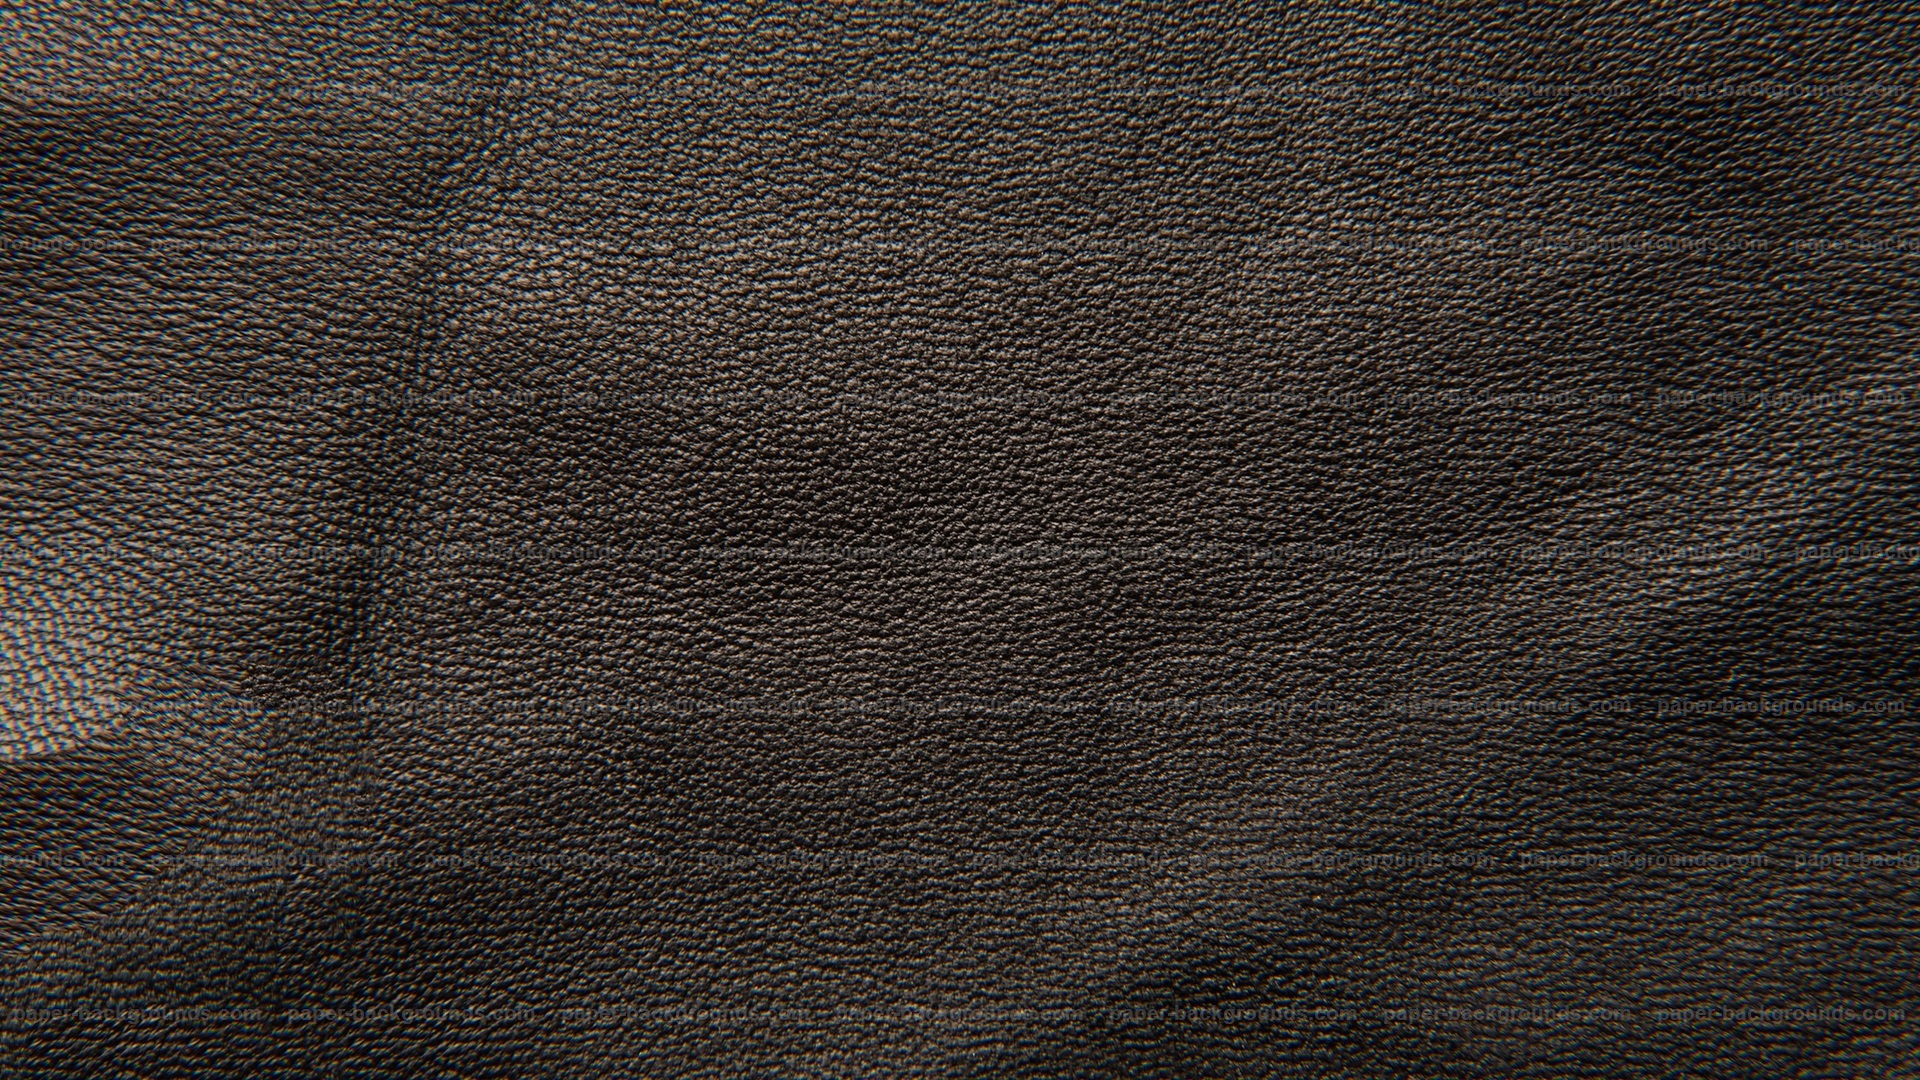 Black Leather Texture Background HD